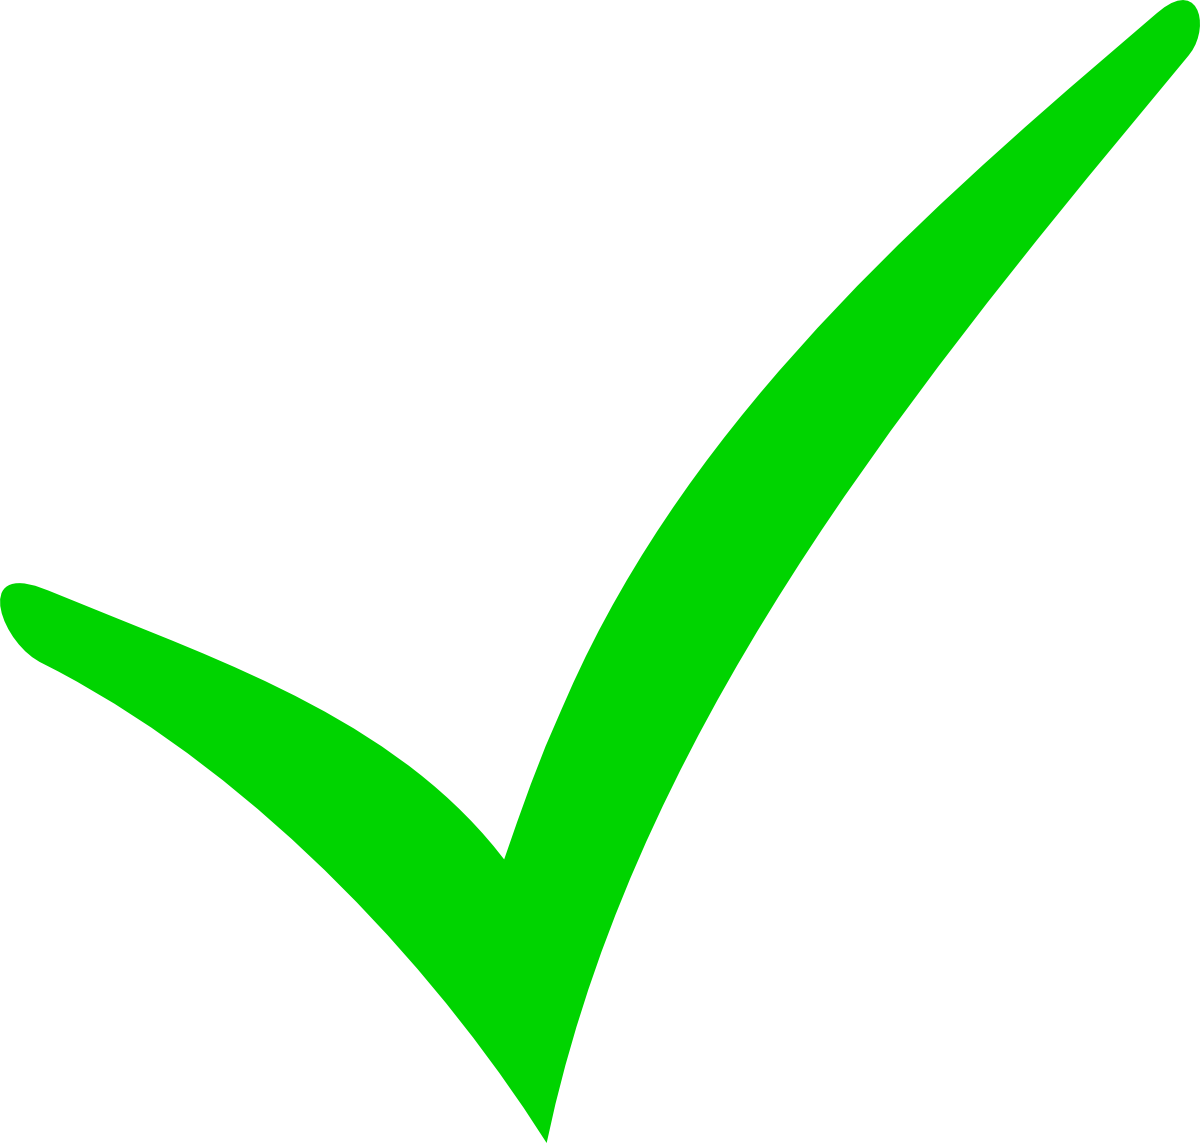 Checkmark Png - ClipArt Best